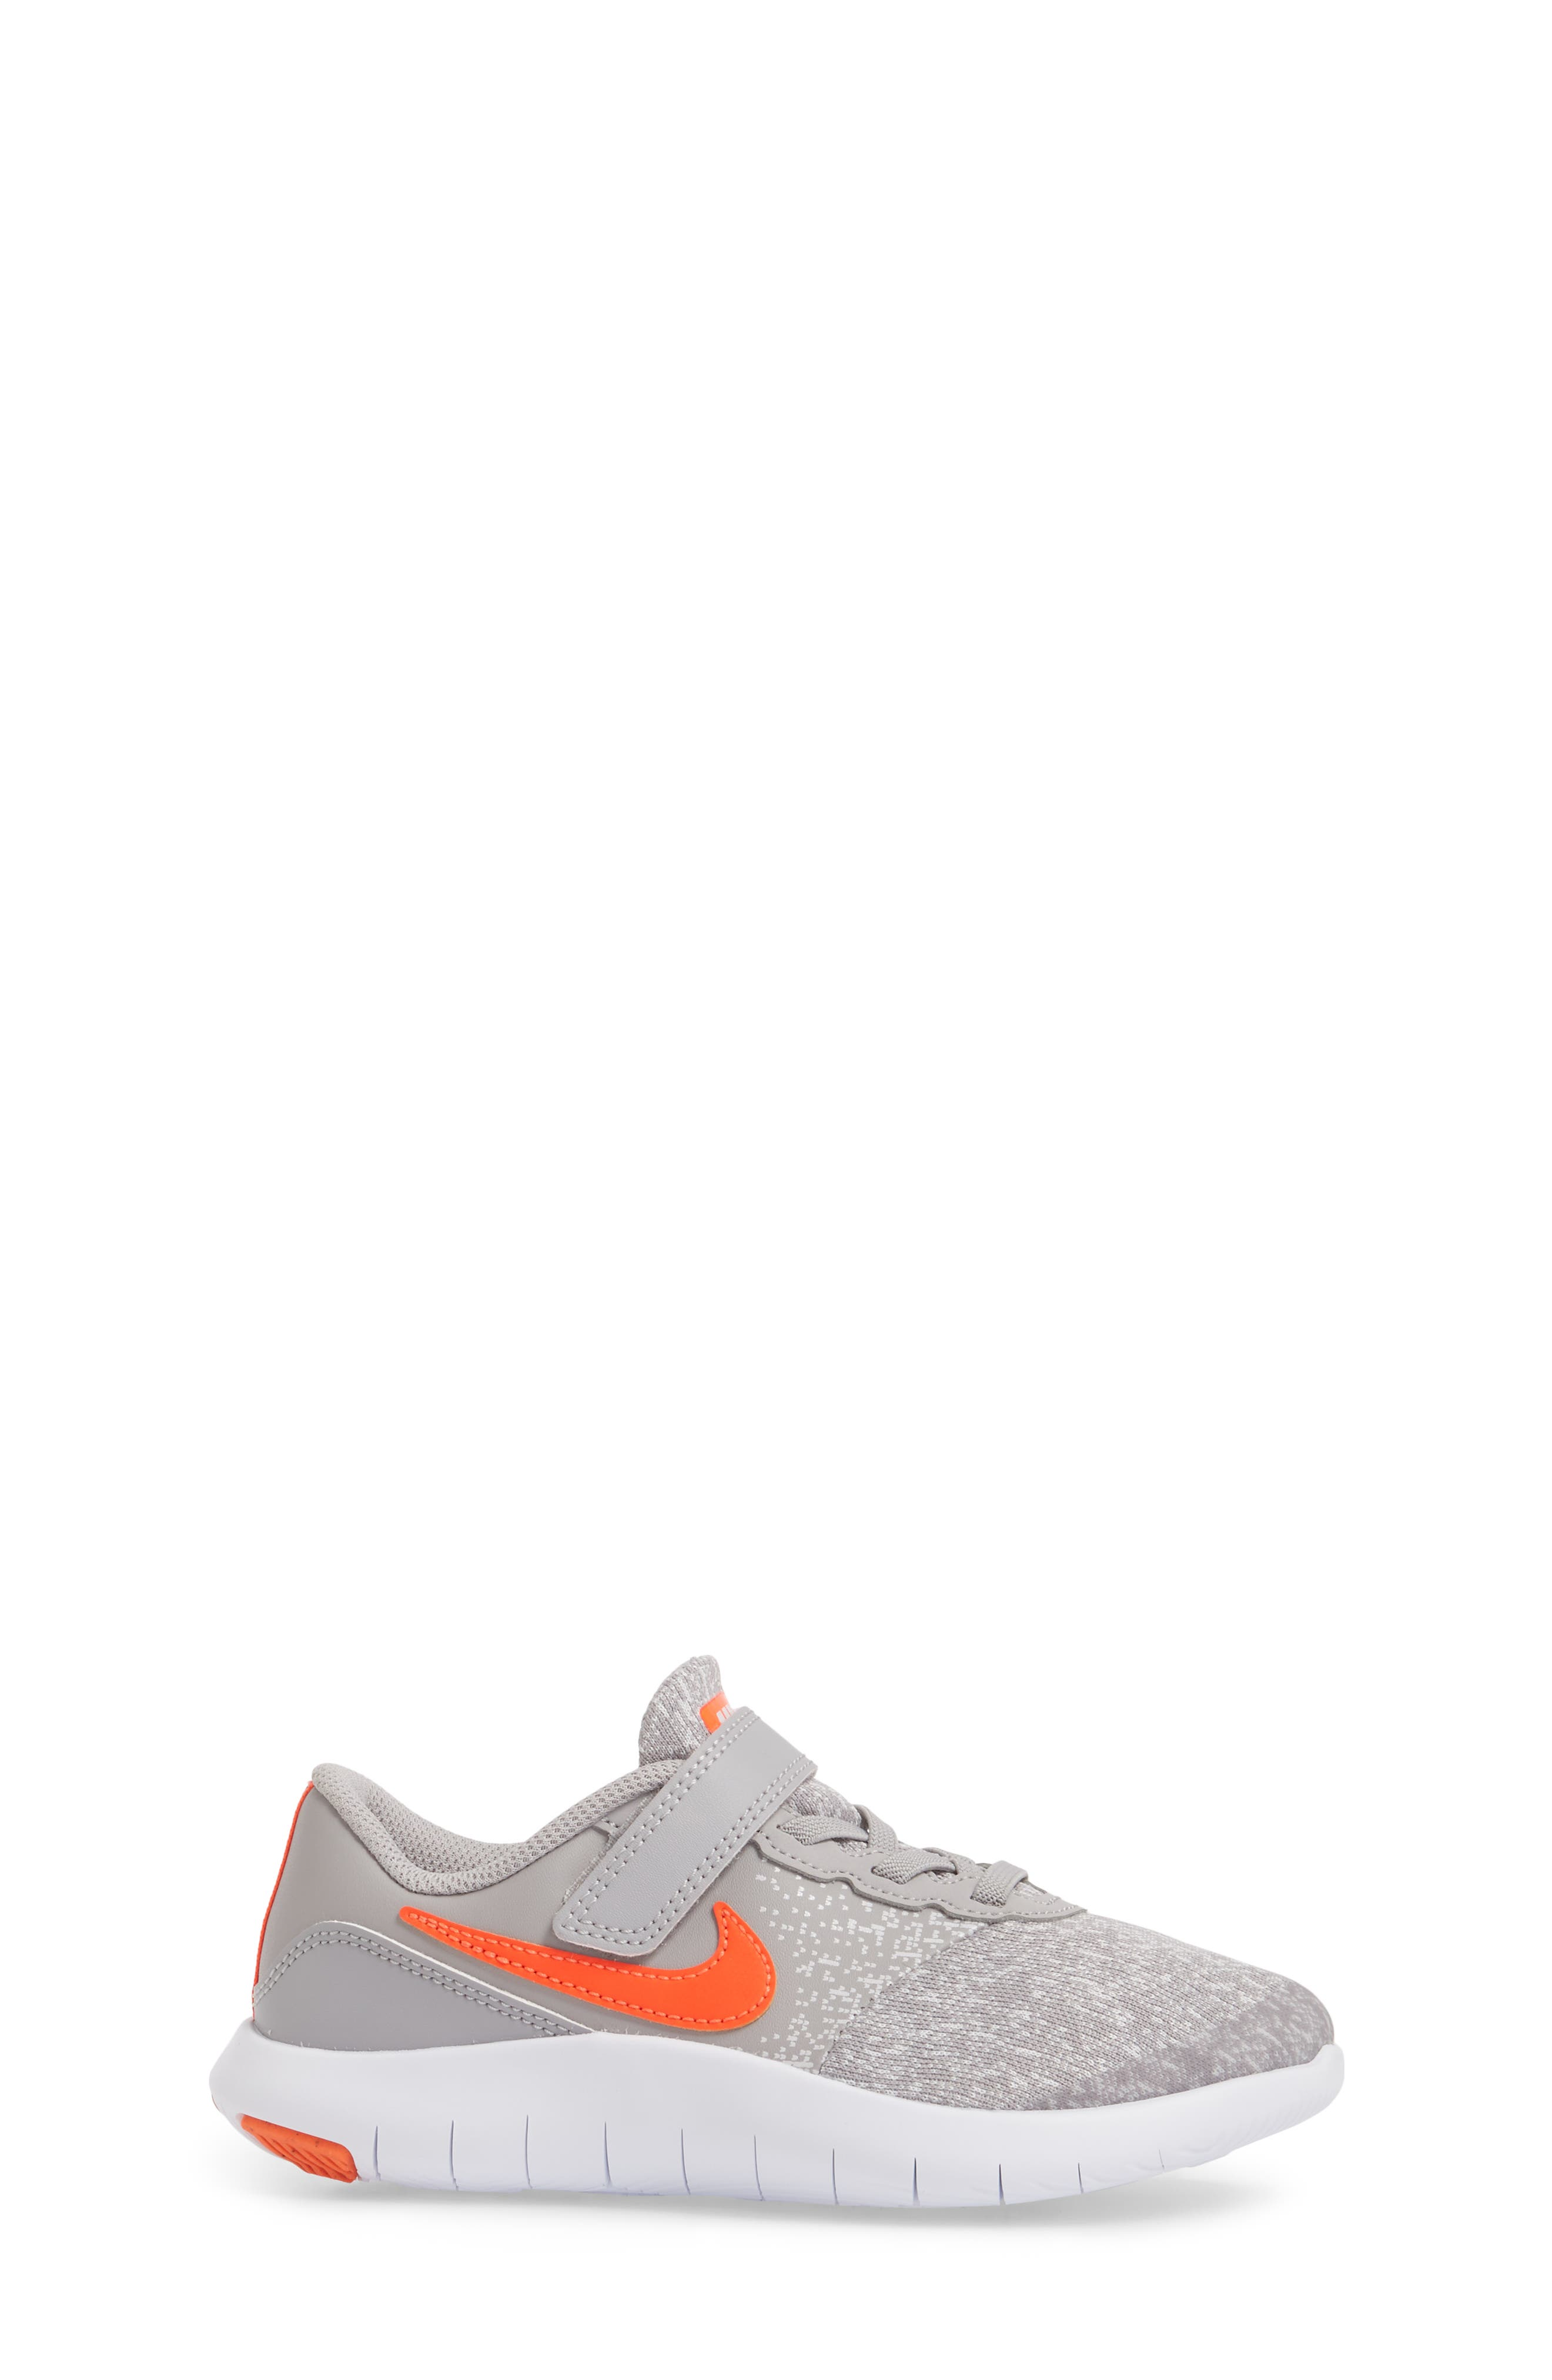 Flex Contact Running Shoe,                             Alternate thumbnail 4, color,                             Atmosphere Grey/ Total Crimson